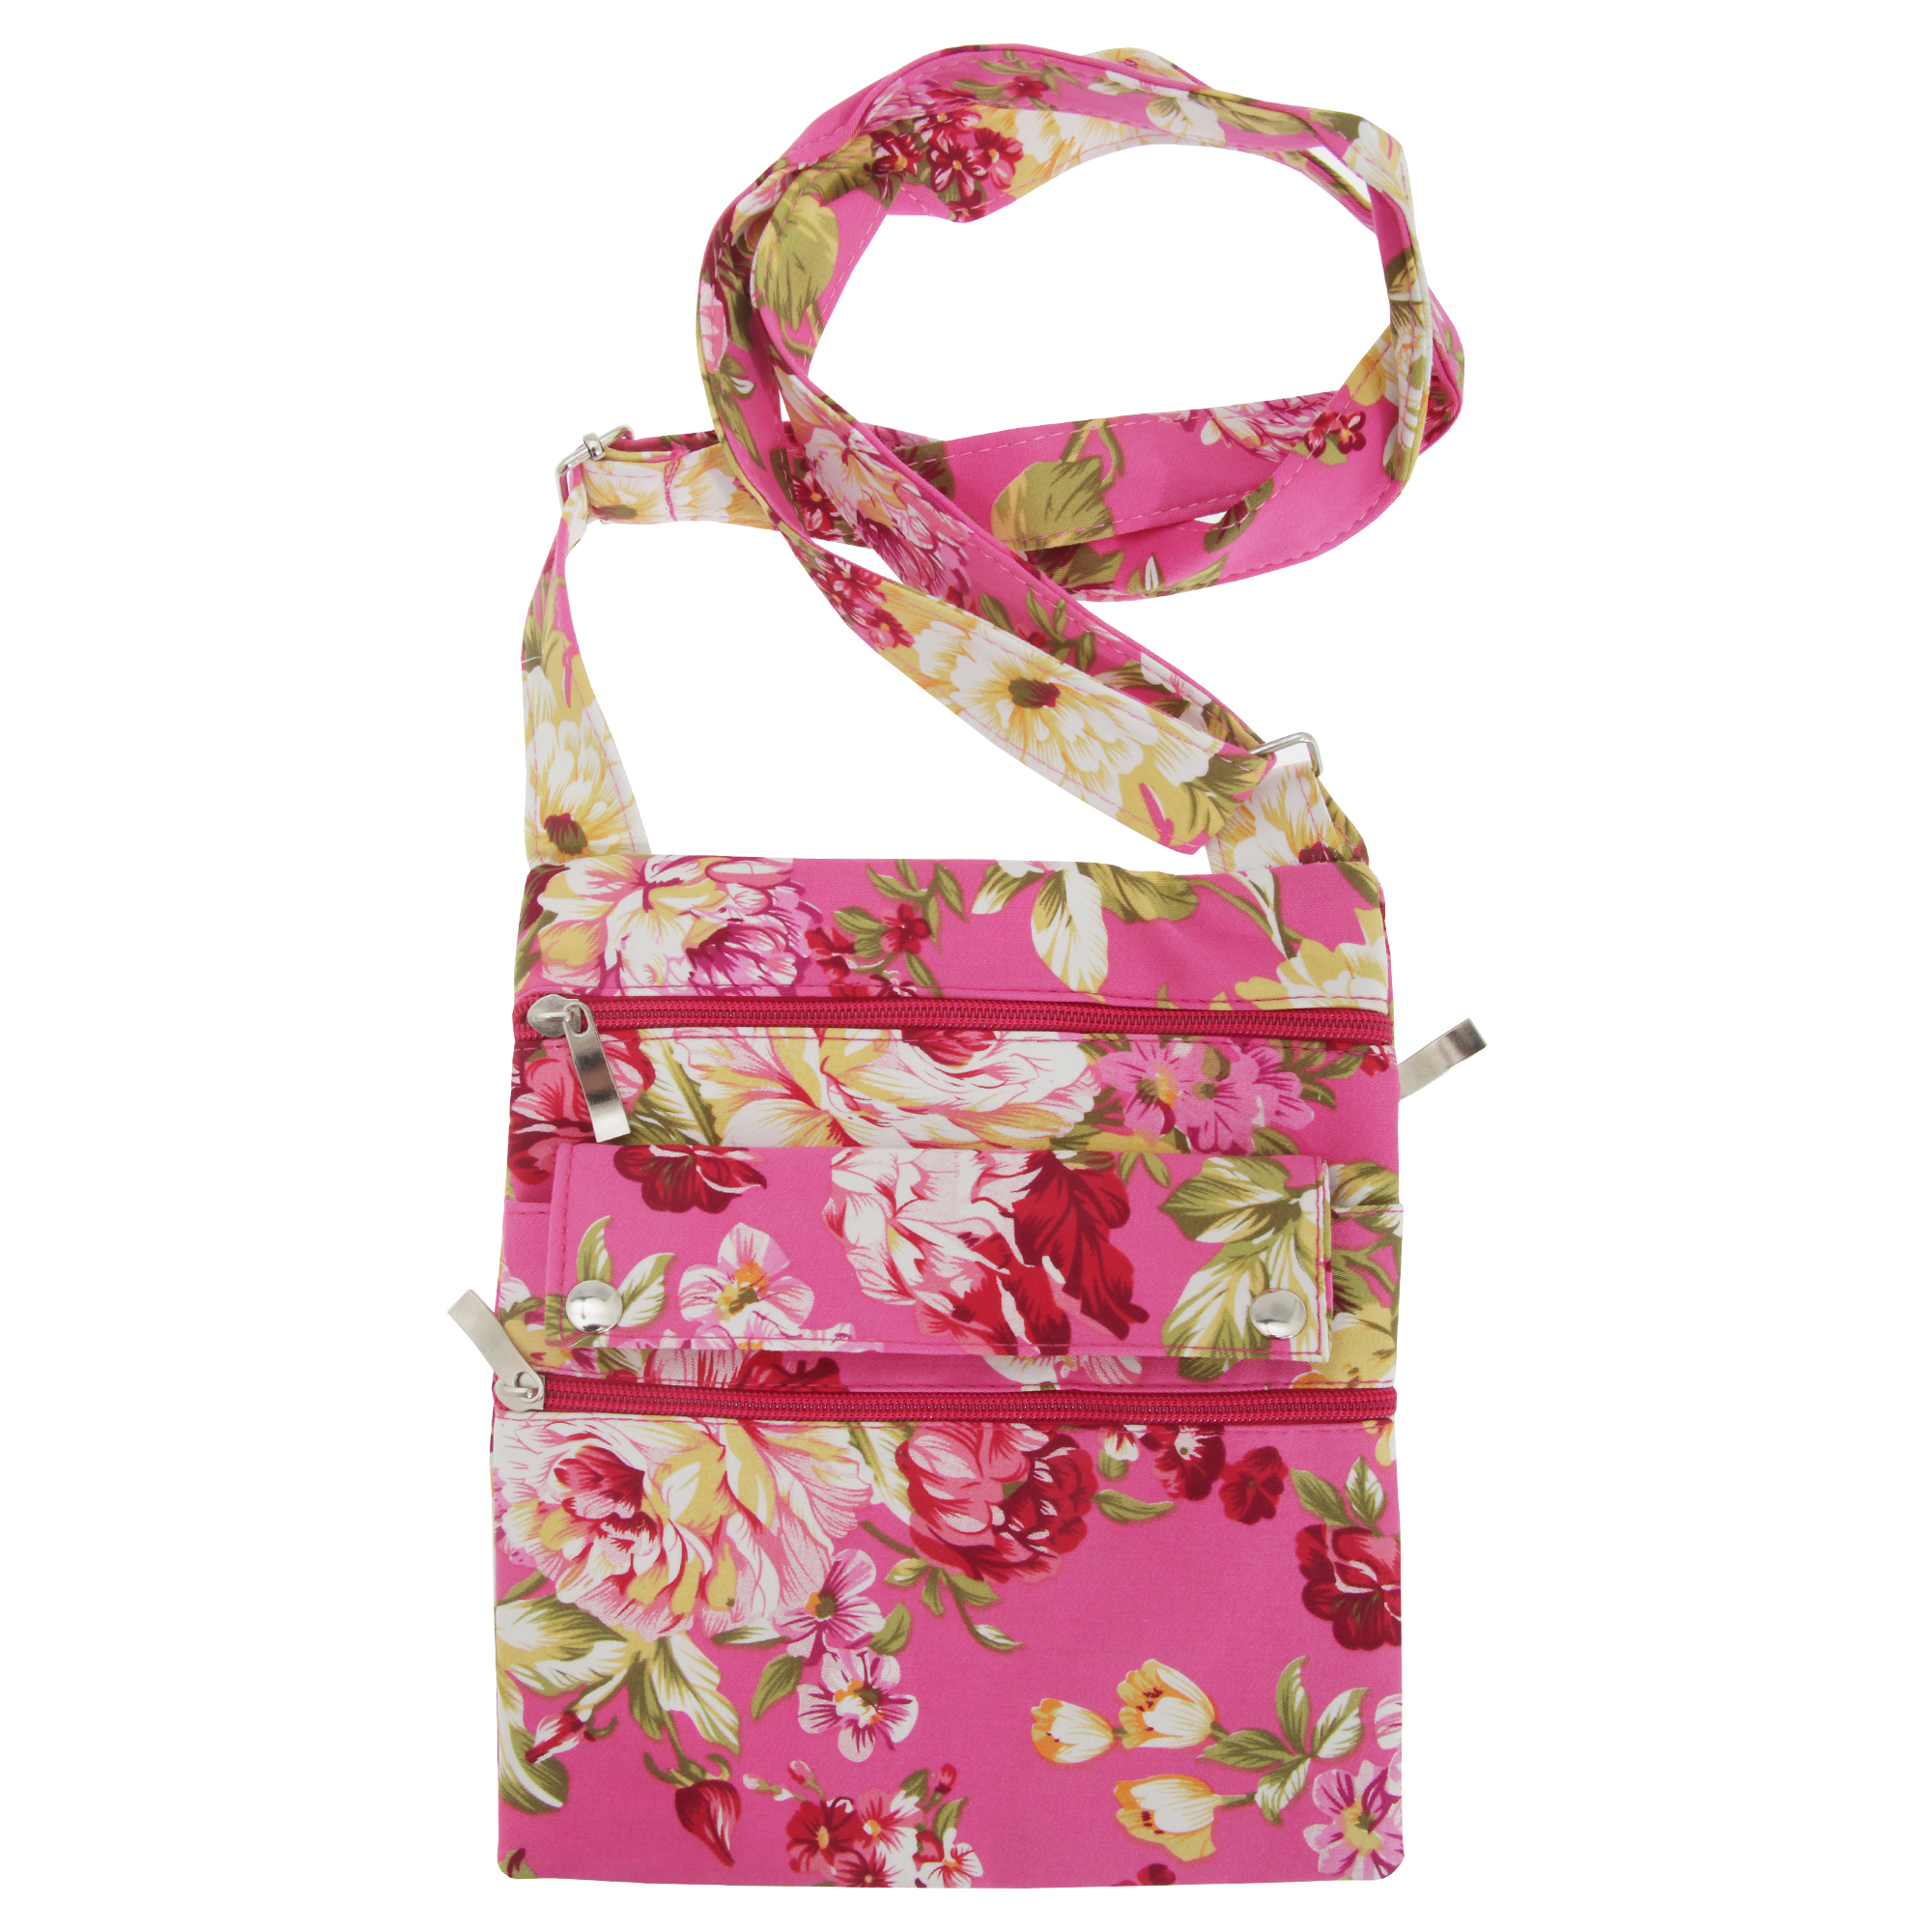 Womens/Ladies Floral Patterned Cross Body Shoulder Strap Handbag/Bag | EBay